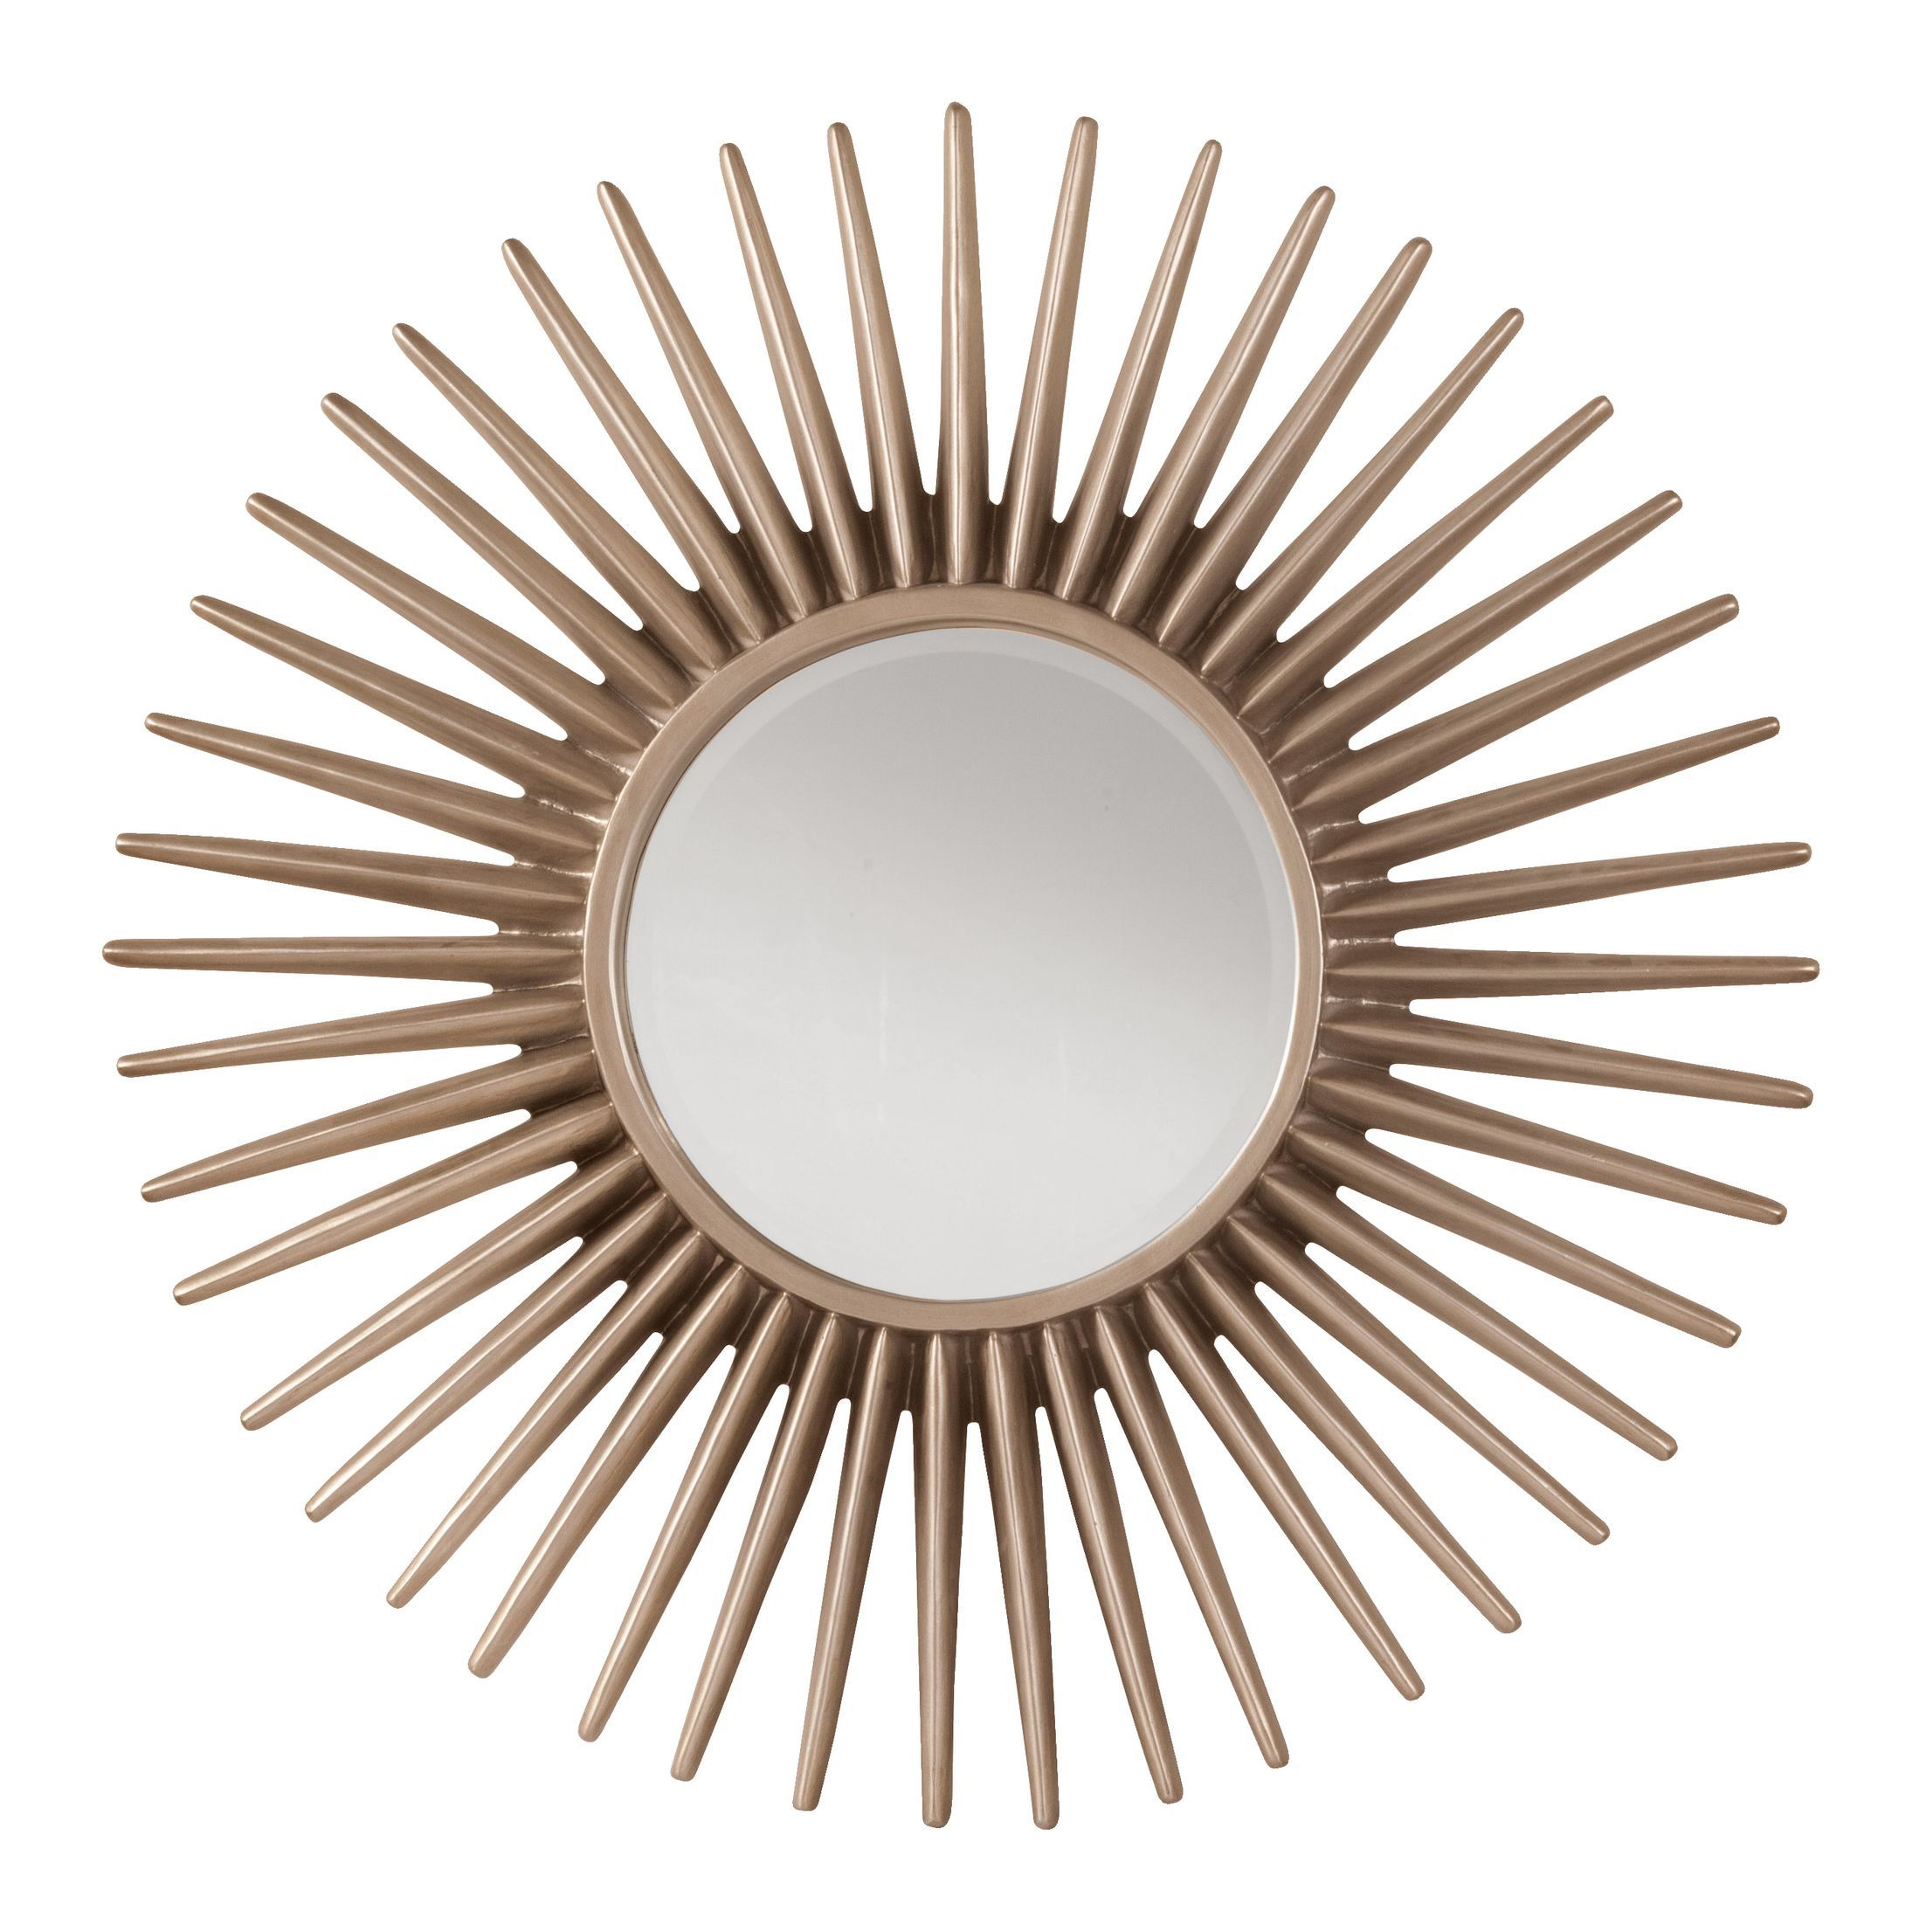 Ella Sunbeam Decorative Beveled Wall Mirror | Home | Mirror within Josephson Starburst Glam Beveled Accent Wall Mirrors (Image 4 of 22)